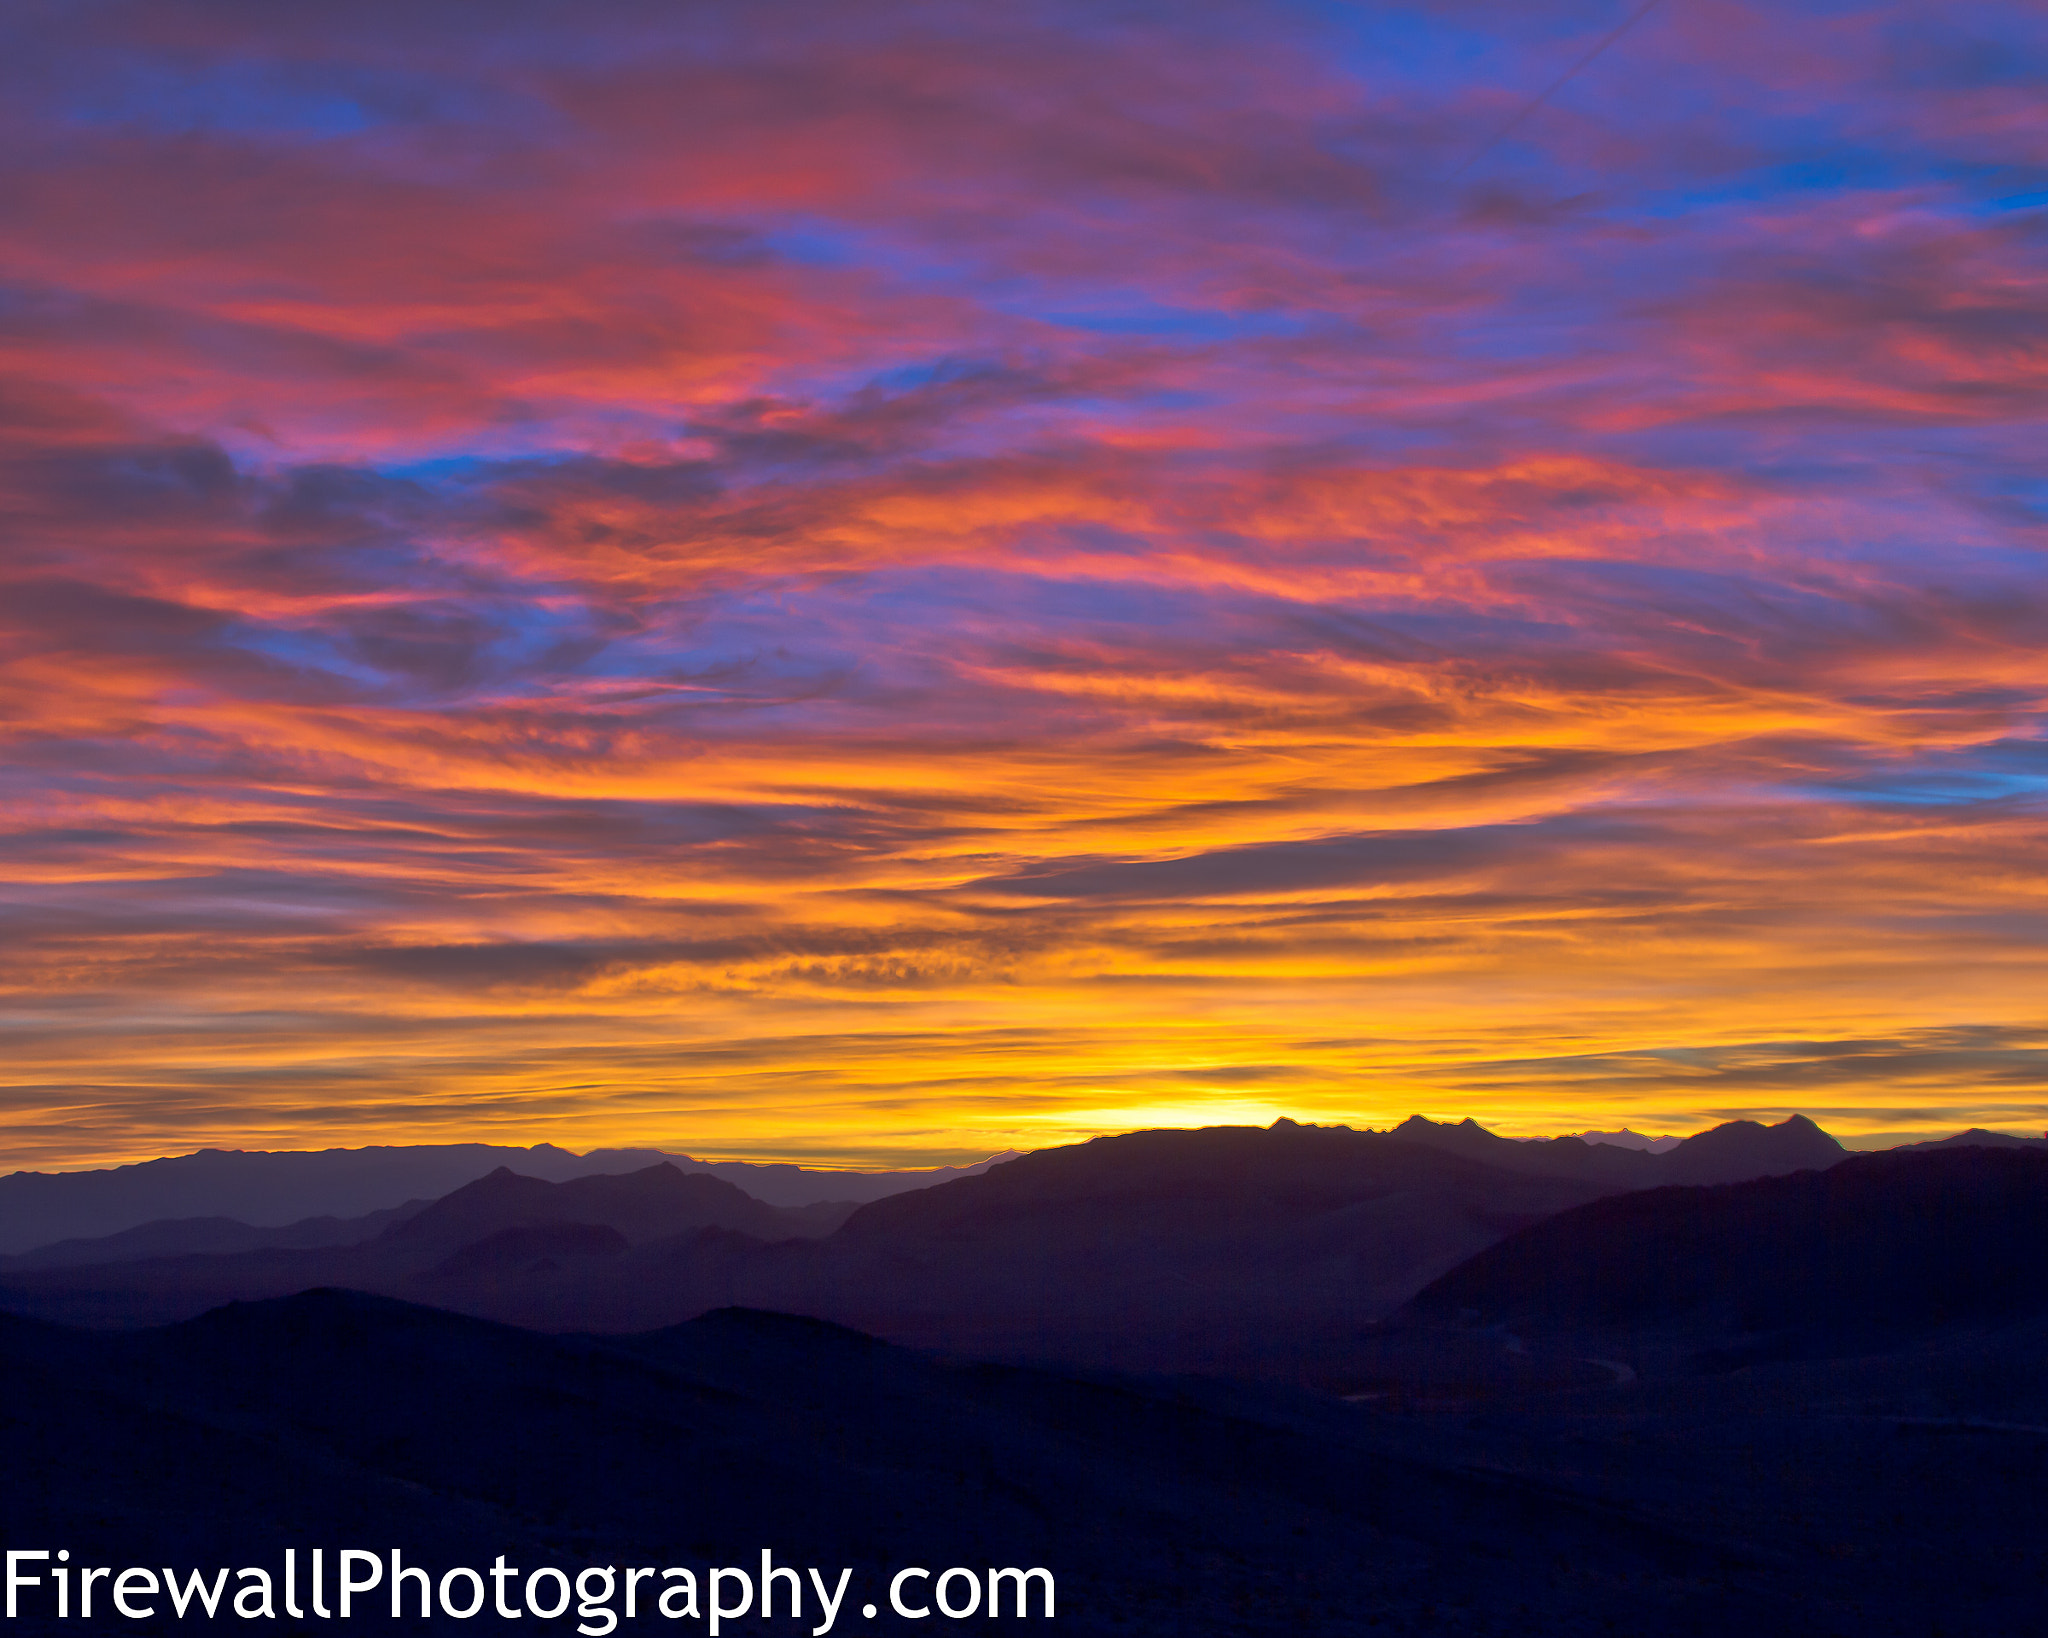 Photograph Sunrise over Black Mountains by J McDonald on 500px